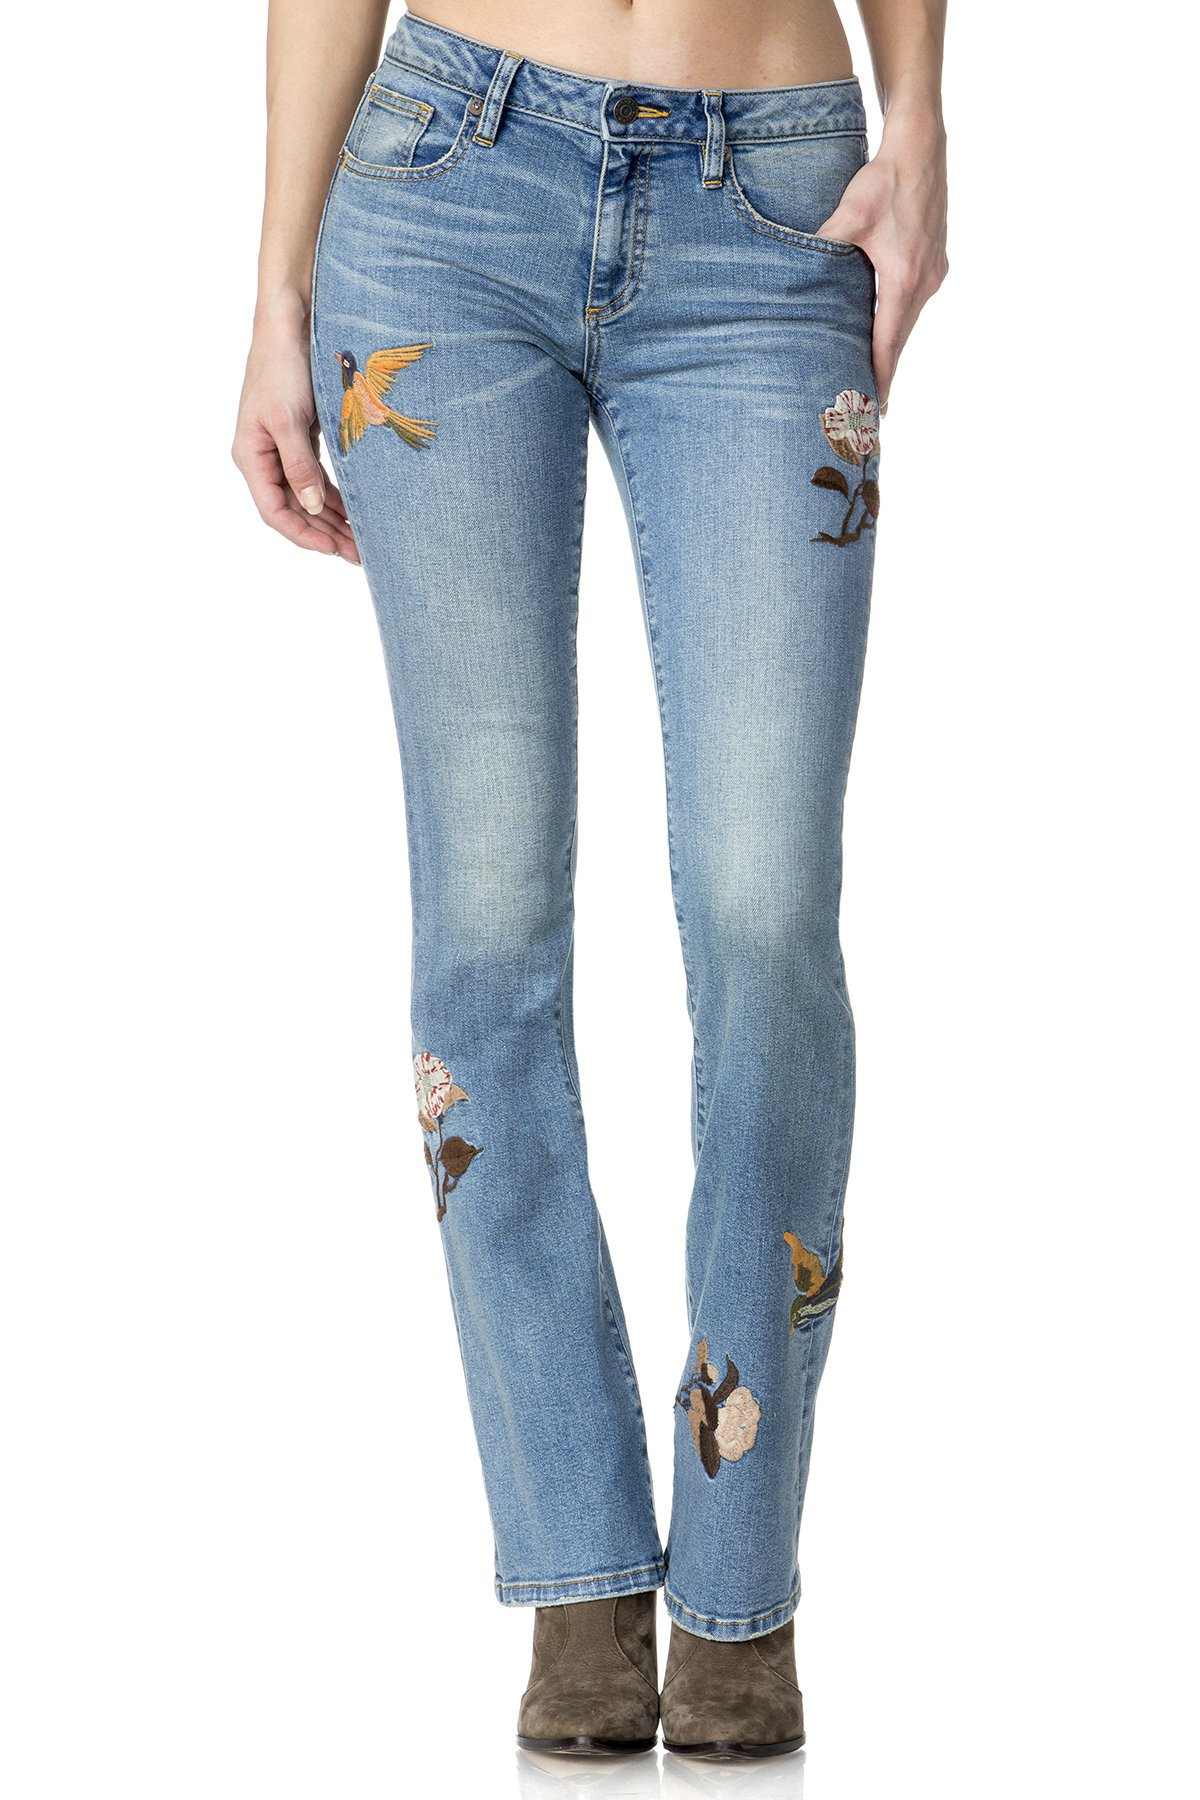 Miss Me Womens Like Woah Mid-Rise Boot Cut Jean 30 Medium Blue